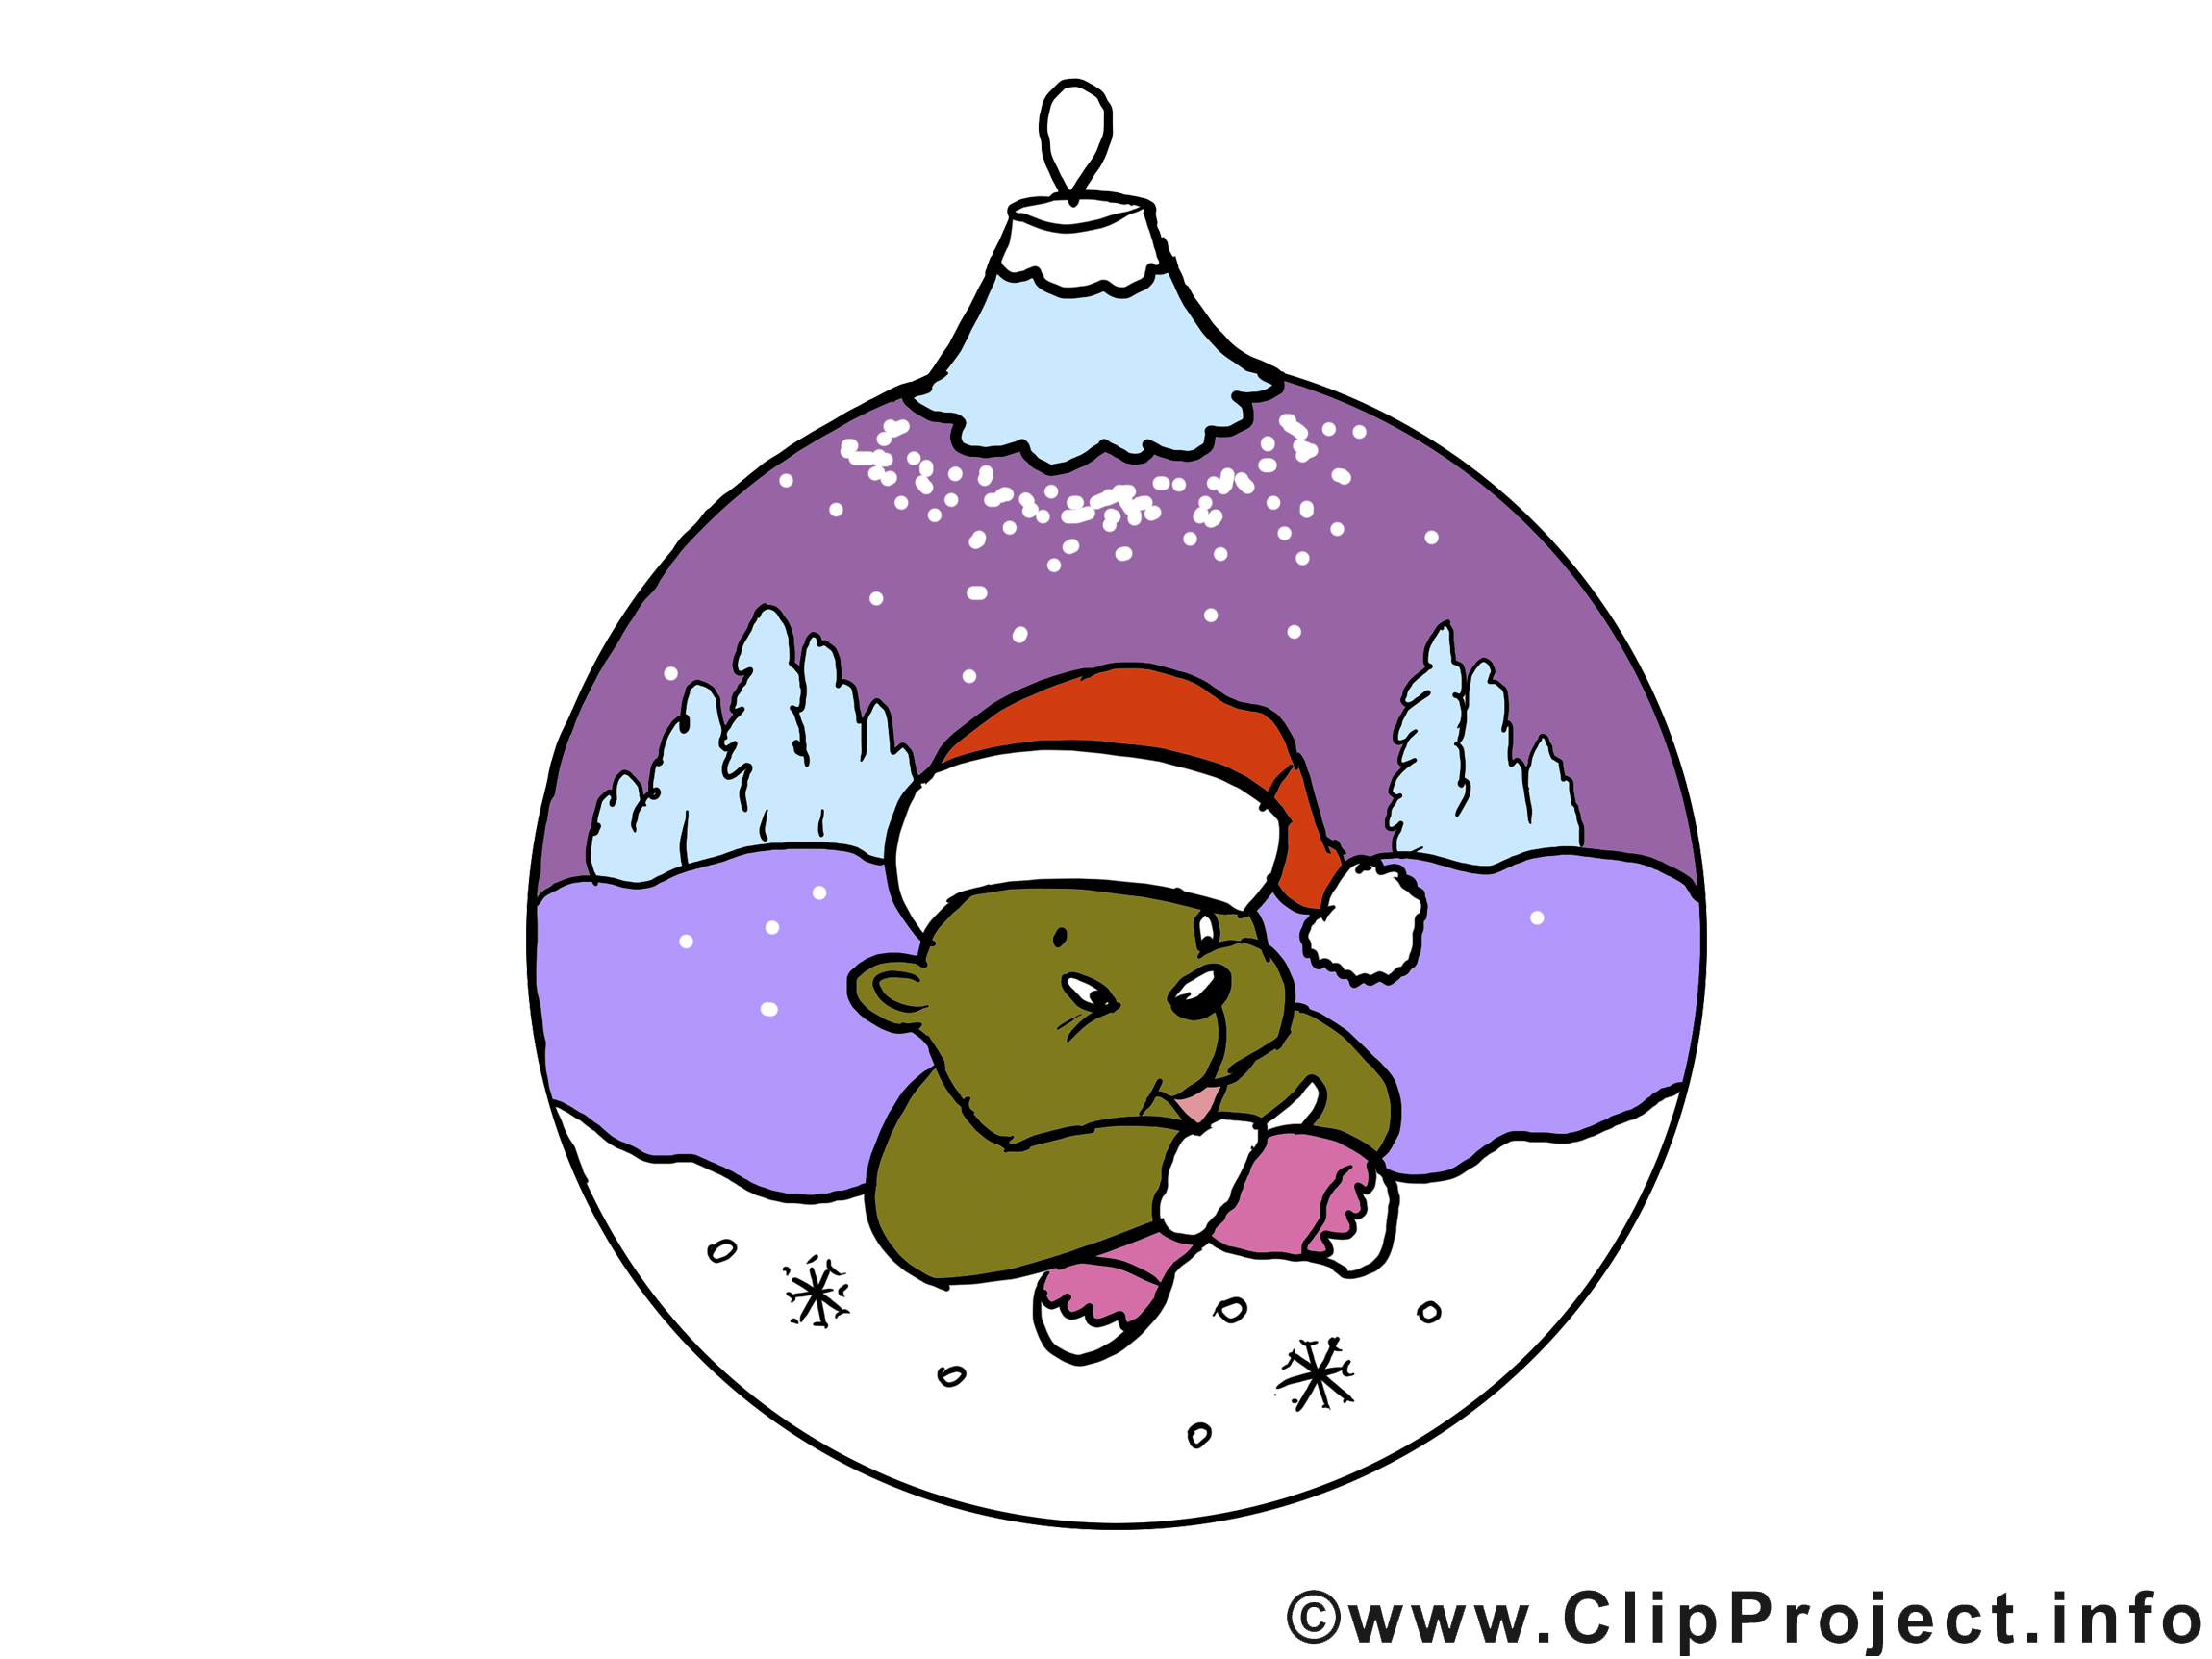 Weihnachtsmotive Png.Weihnachtsmotive Clipart 3 Clipart Station